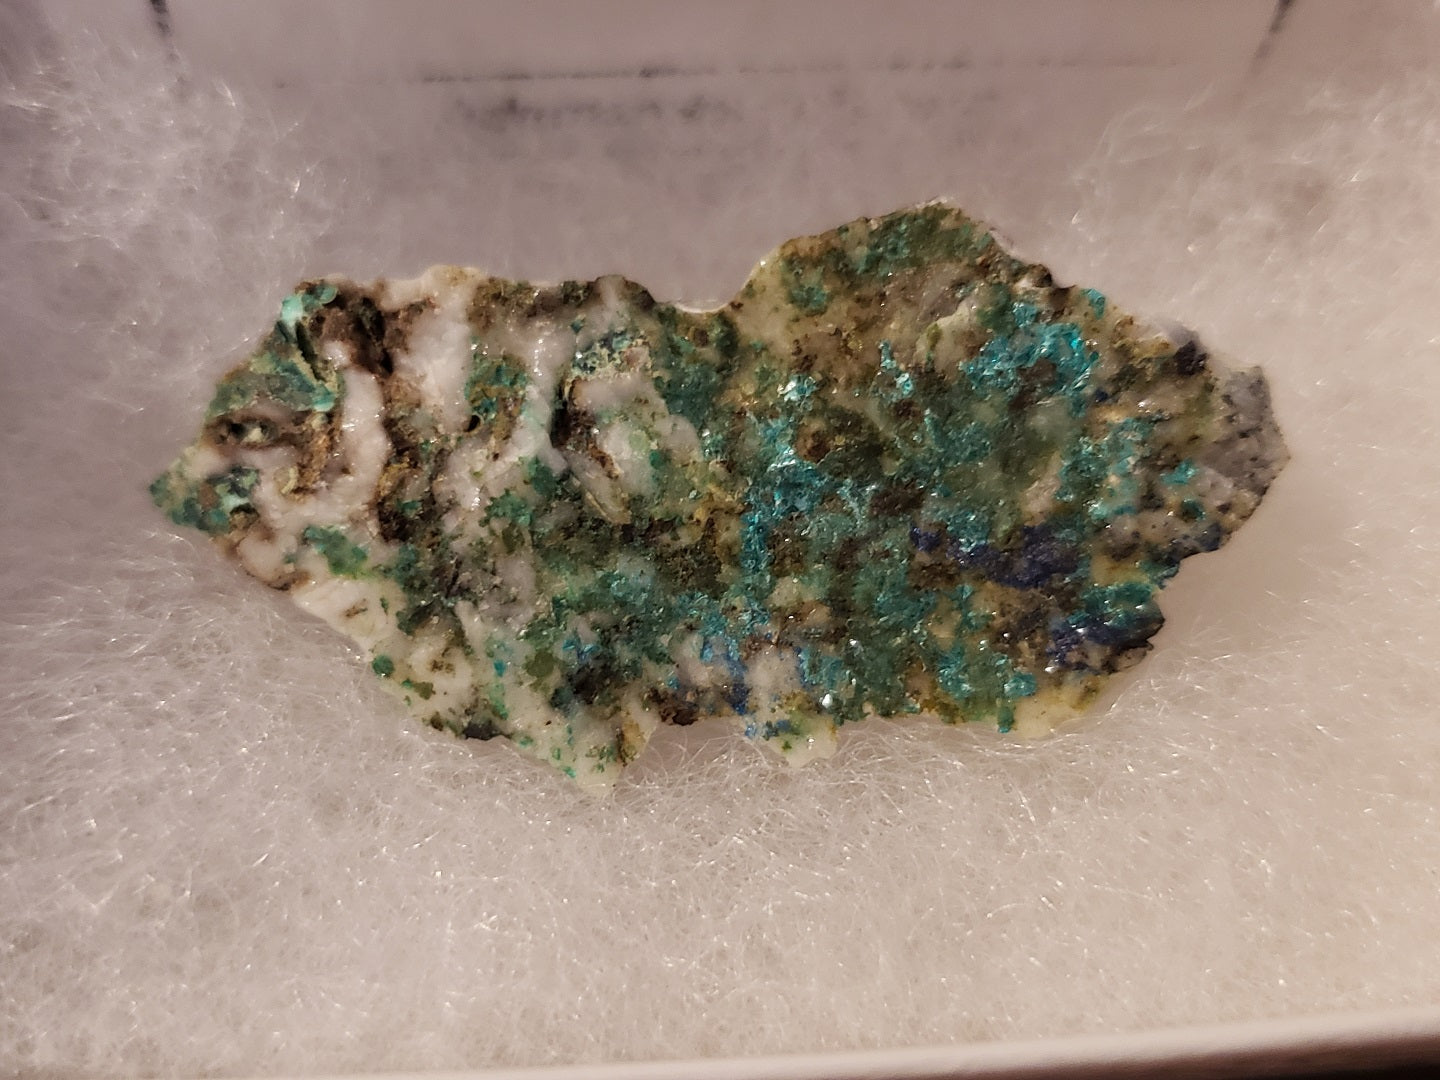 Juanitaite with Tyrolite and Connellite